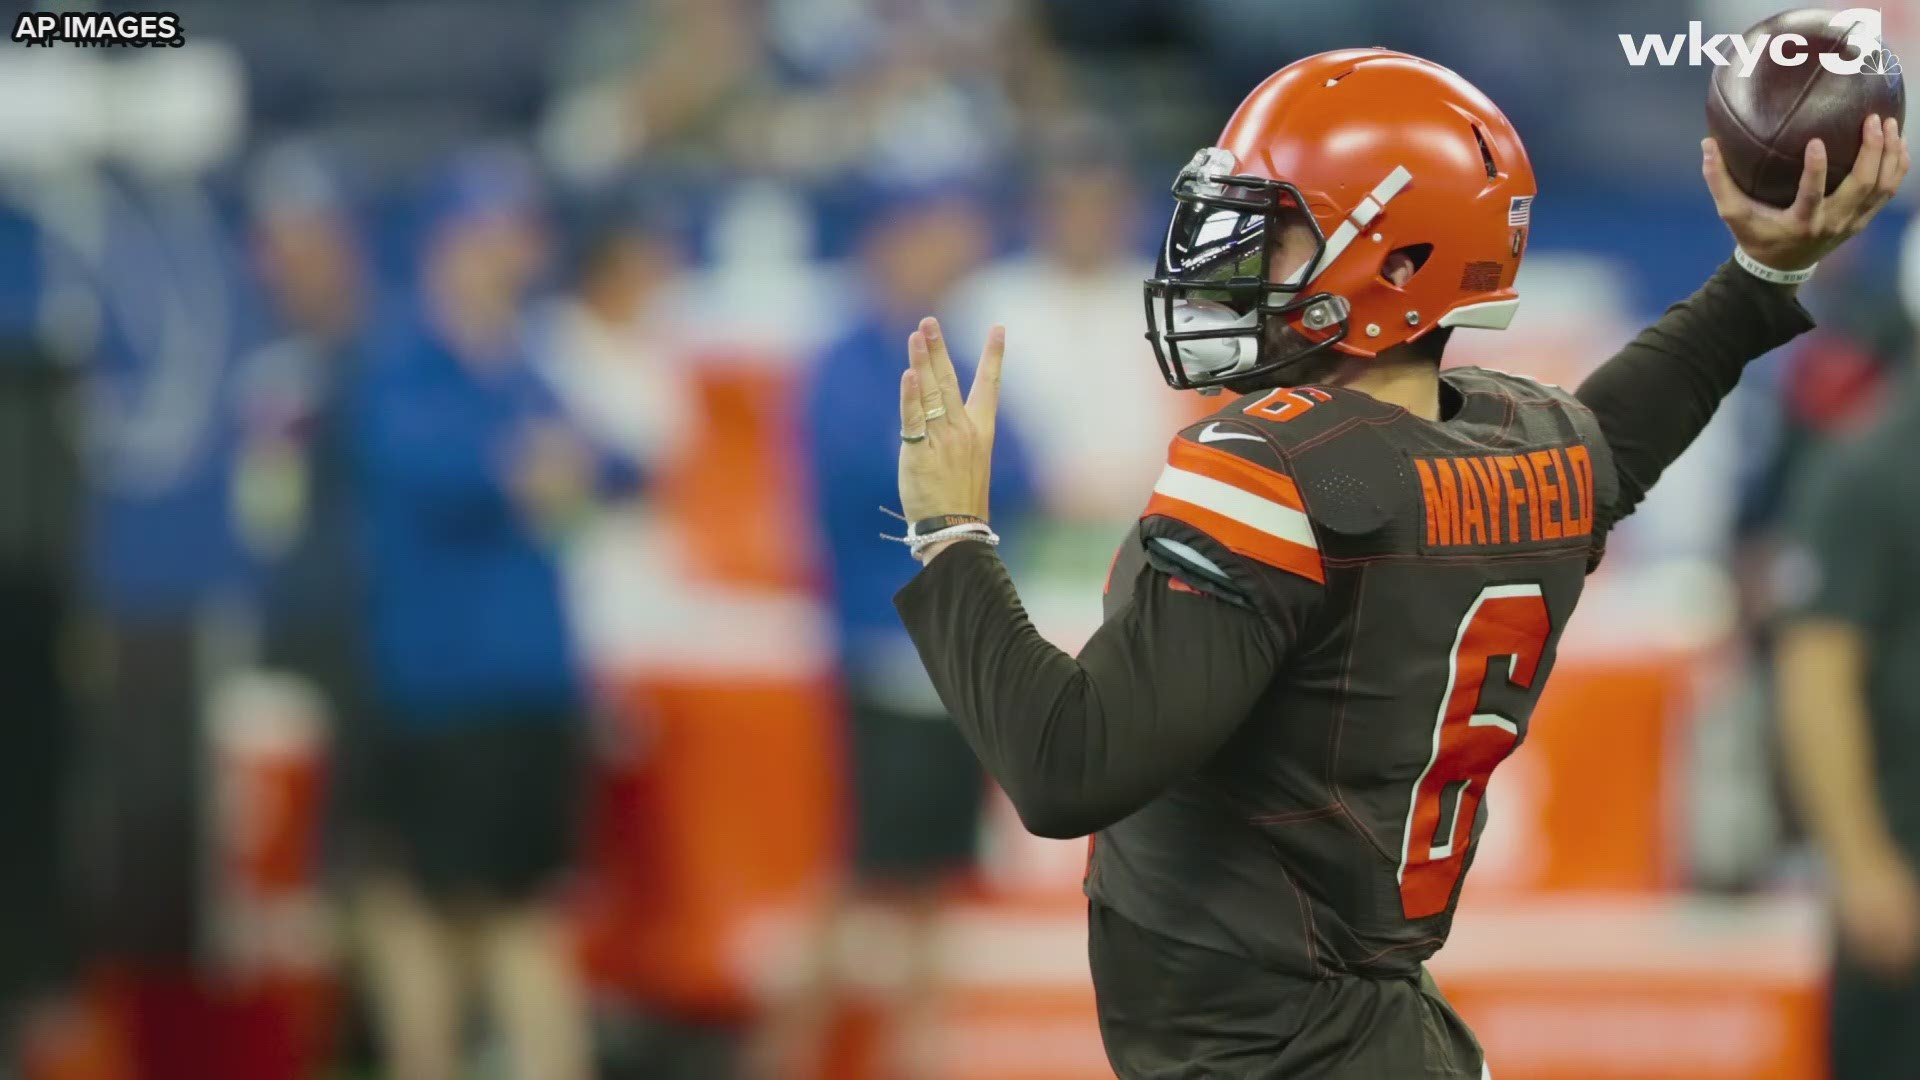 Cleveland Browns' Color Rush uniforms will be team's primary look for 2019 season